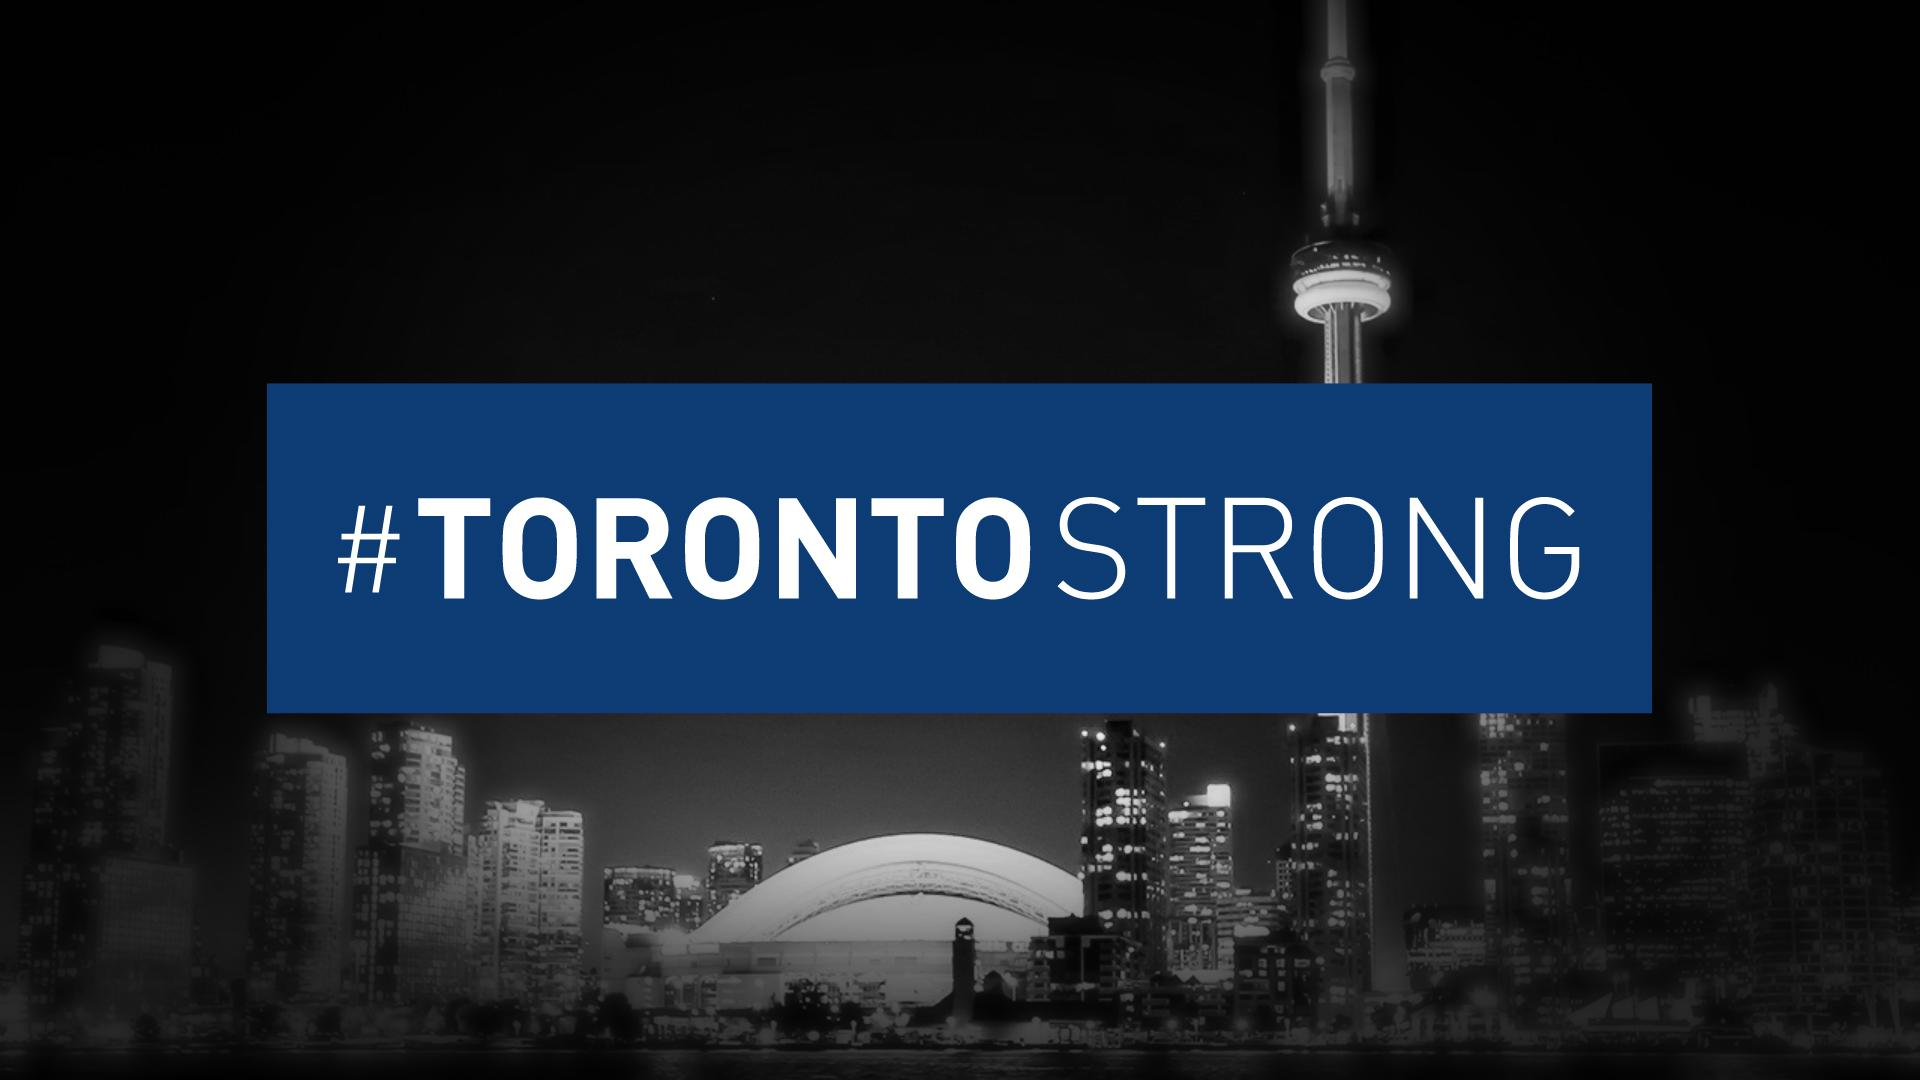 Love to our city, our country, the place we call home. �� #TorontoStrong #TorontoTheGood https://t.co/p1RuT3WUyY